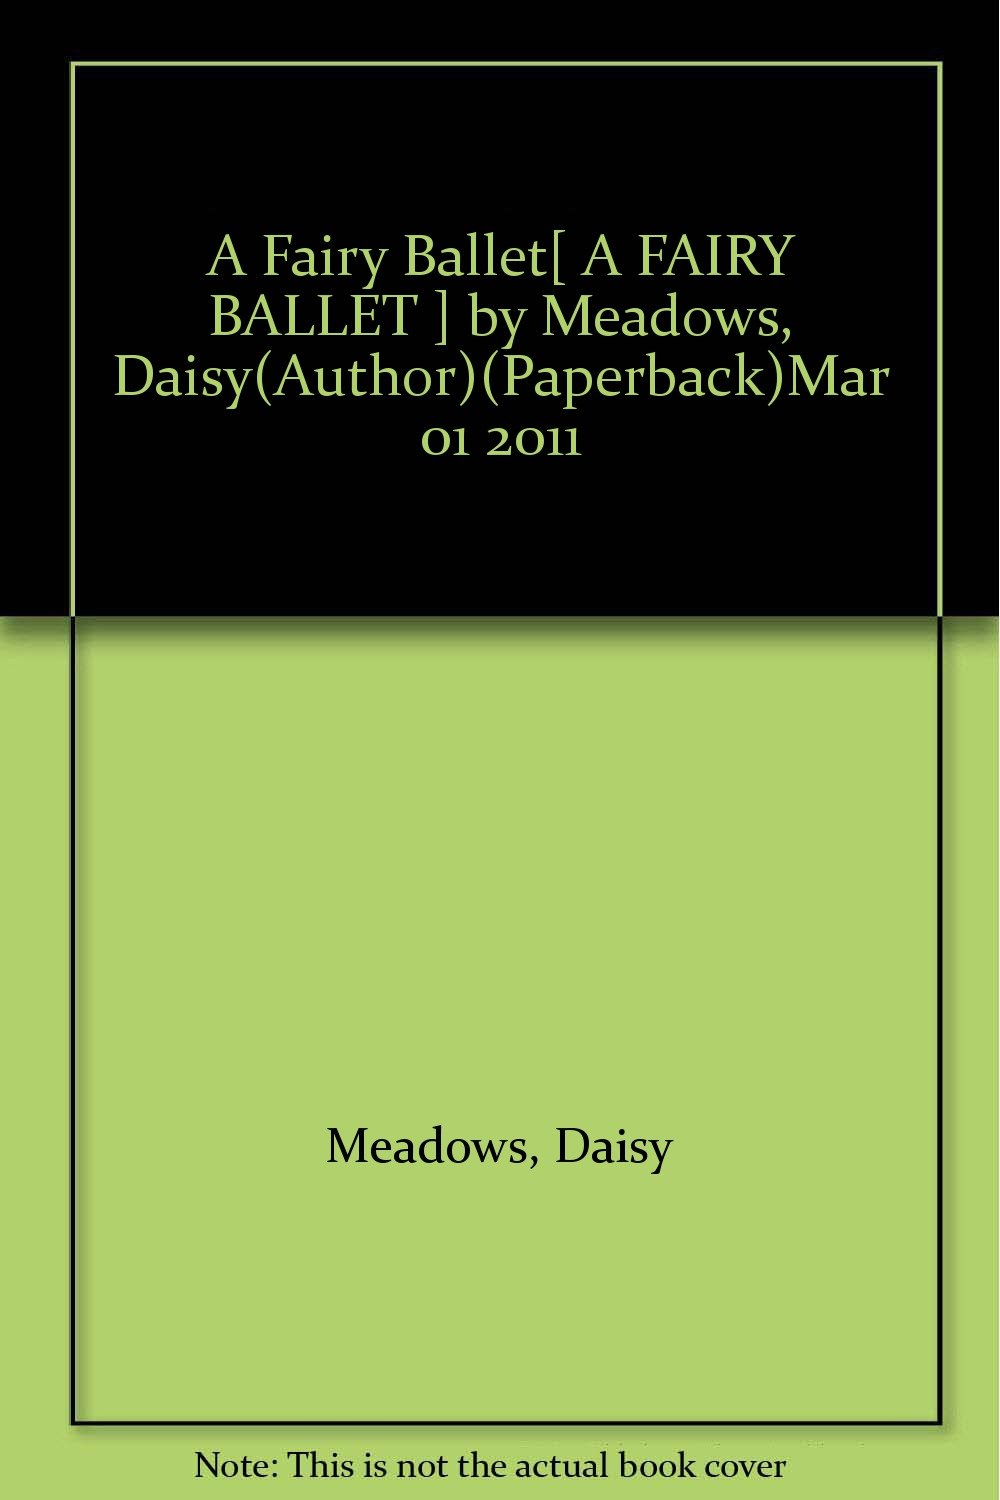 Download A Fairy Ballet[ A FAIRY BALLET ] by Meadows, Daisy(Author)(Paperback)Mar 01 2011 pdf